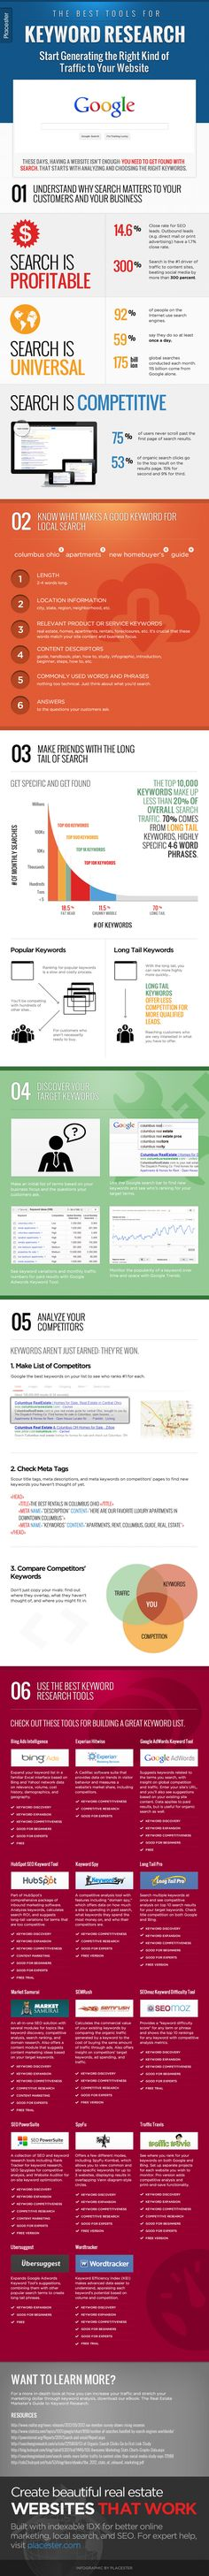 5 Incredible Keyword Research Analysis Tips Infographic